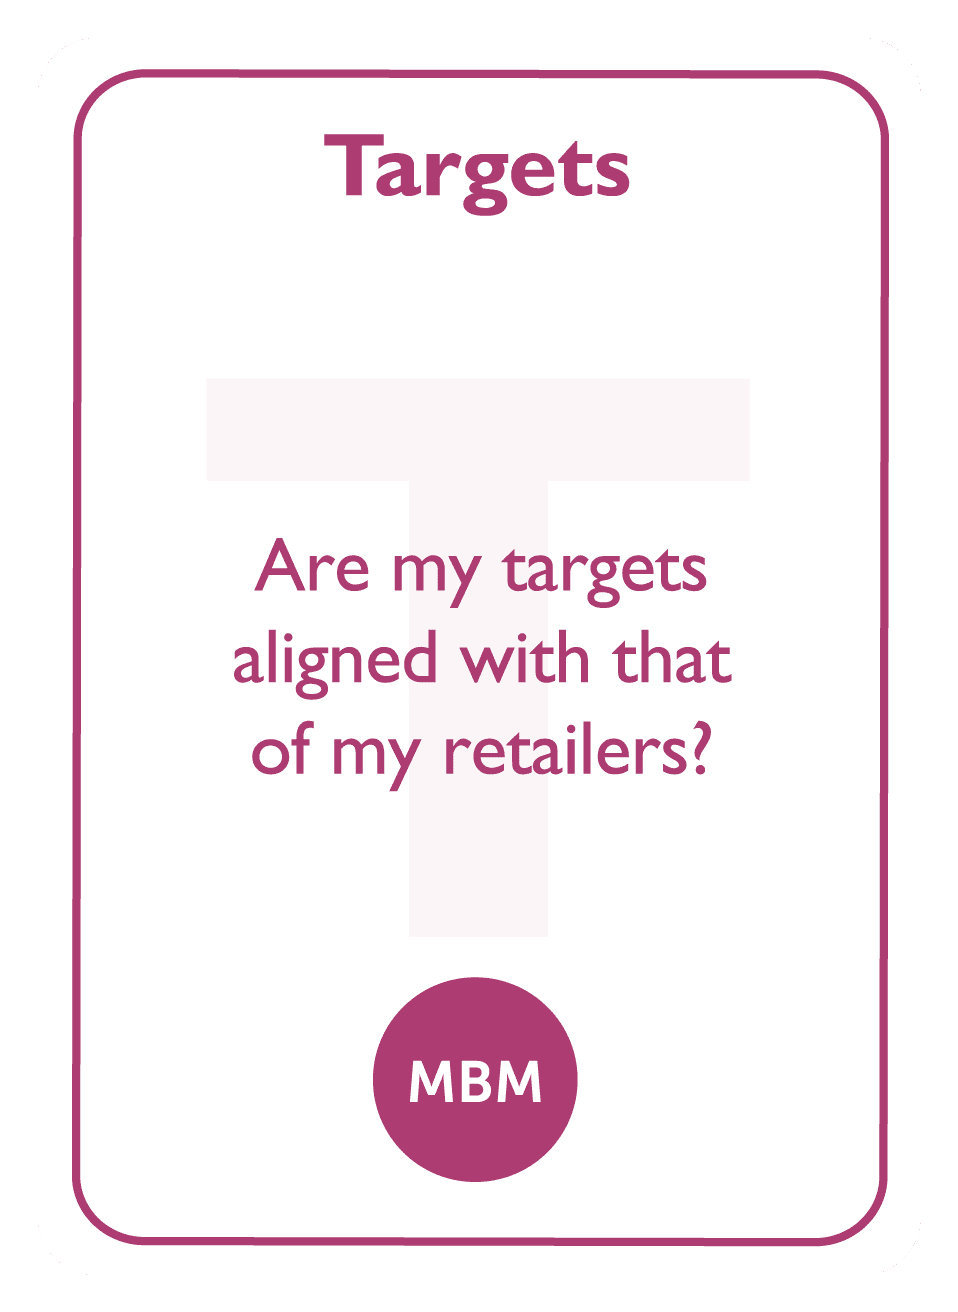 Negotiation coaching card titled Targets